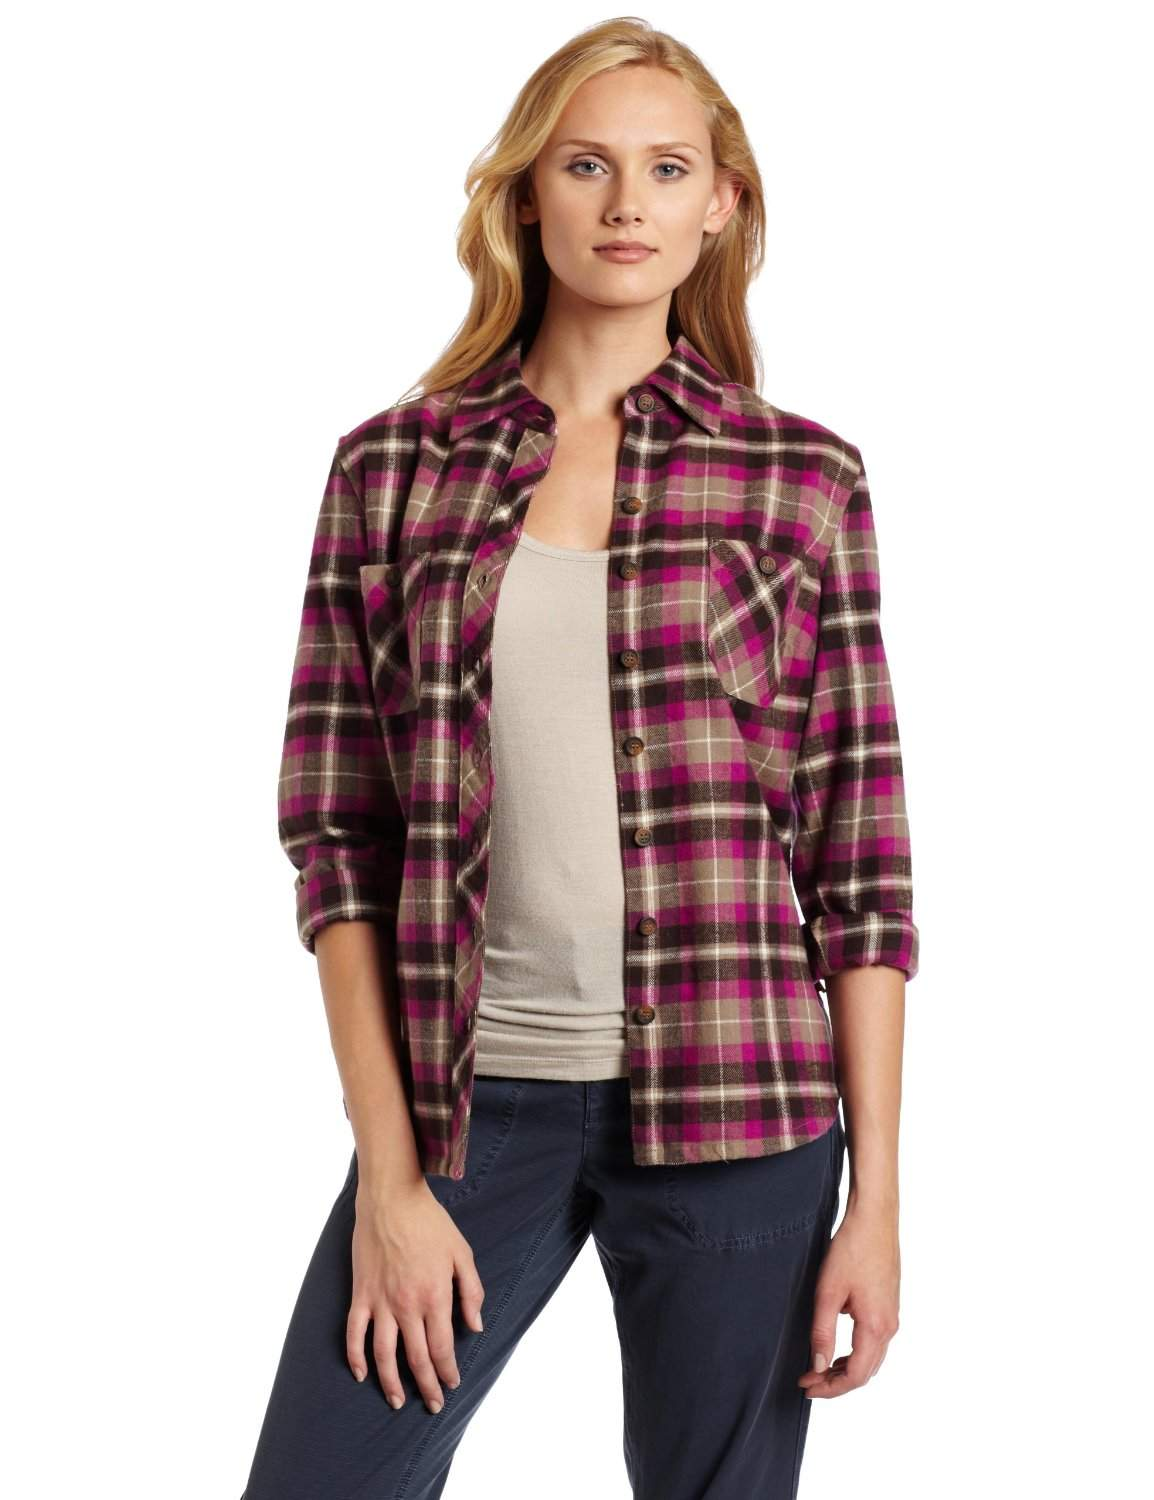 Simply Styled Women's Flannel Shirt - Plaid. Sold by Sears + 1. $ $ - $ HappyDeal Women Button Cotton Casual Lapel Shirt Plaids Checks Flannel Shirt Top Blouse M~XXL. Sold by Happydeal + 1. $ $ - $